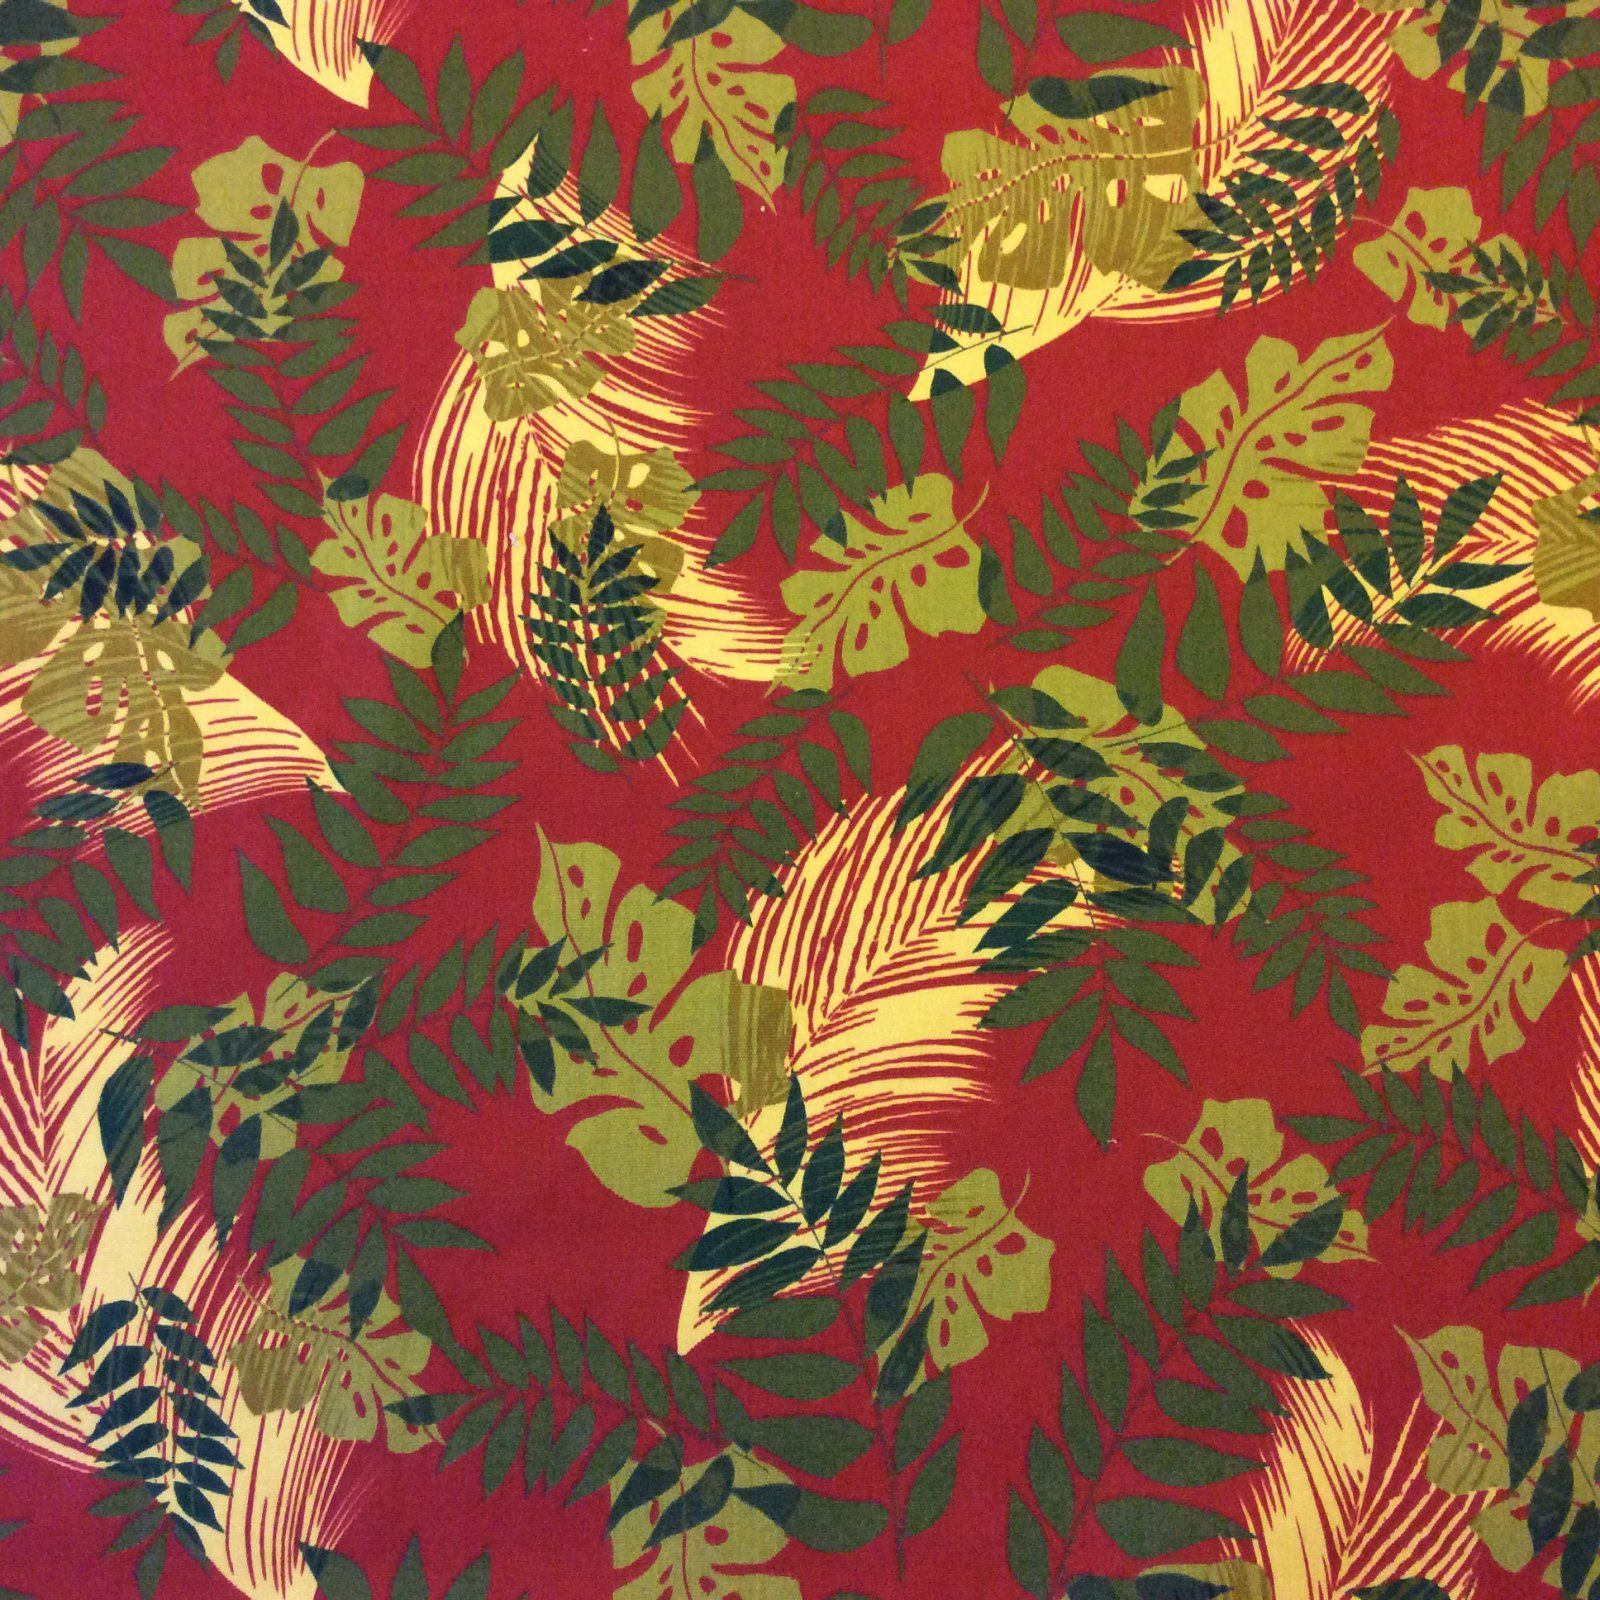 S94 Banana Leaf Neutral Tones Tropical Leaves Plants Wildlife Nature Outdoor fabric Famous Maker